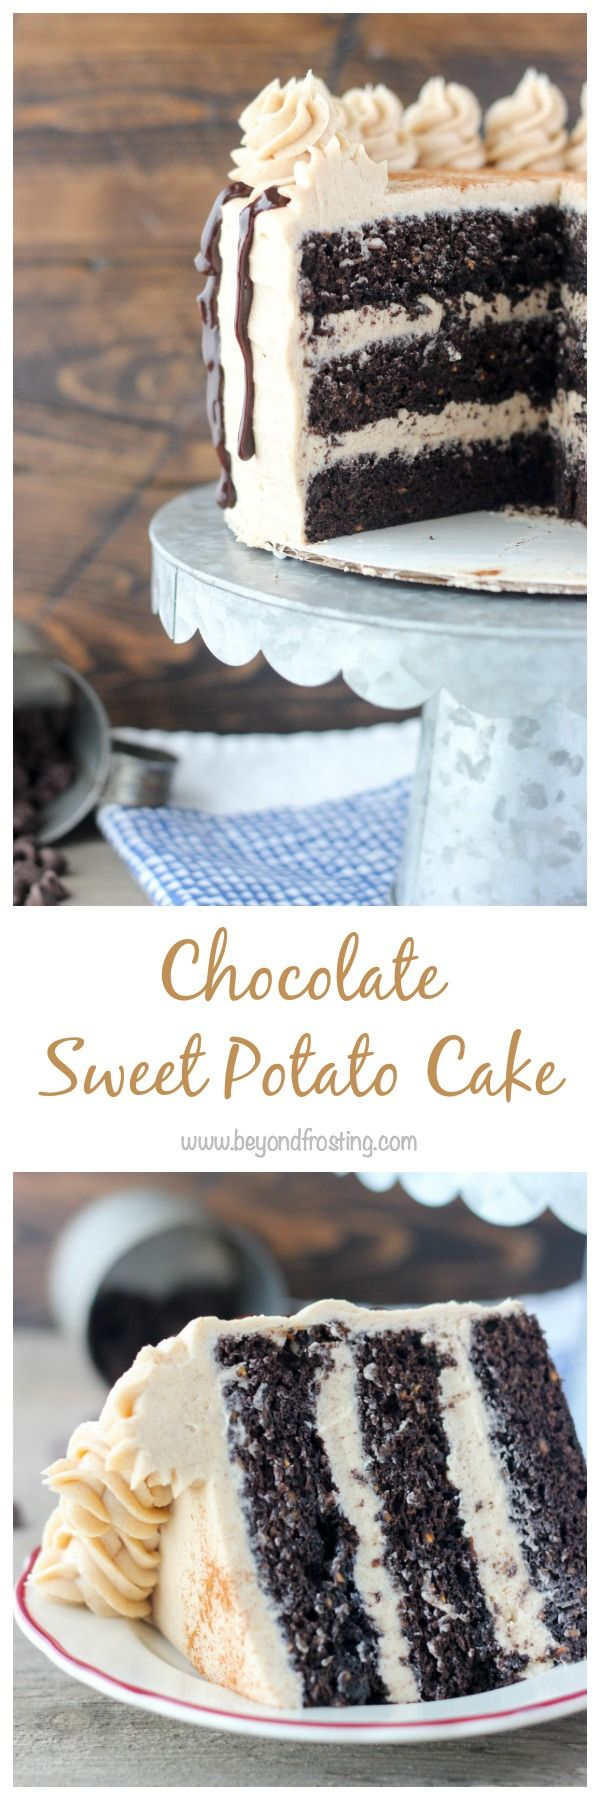 You'll be cutting yourself and extra large slice of this Chocolate Sweet Potato Cake with Cinnamon Brown Sugar Frosting. Three layers of homemade chocolate cake loaded with sweet potato bites. The cake is fluffy and spongy, and a hint of spice. The frosting is to die for and the perfect topping for this cake. What …